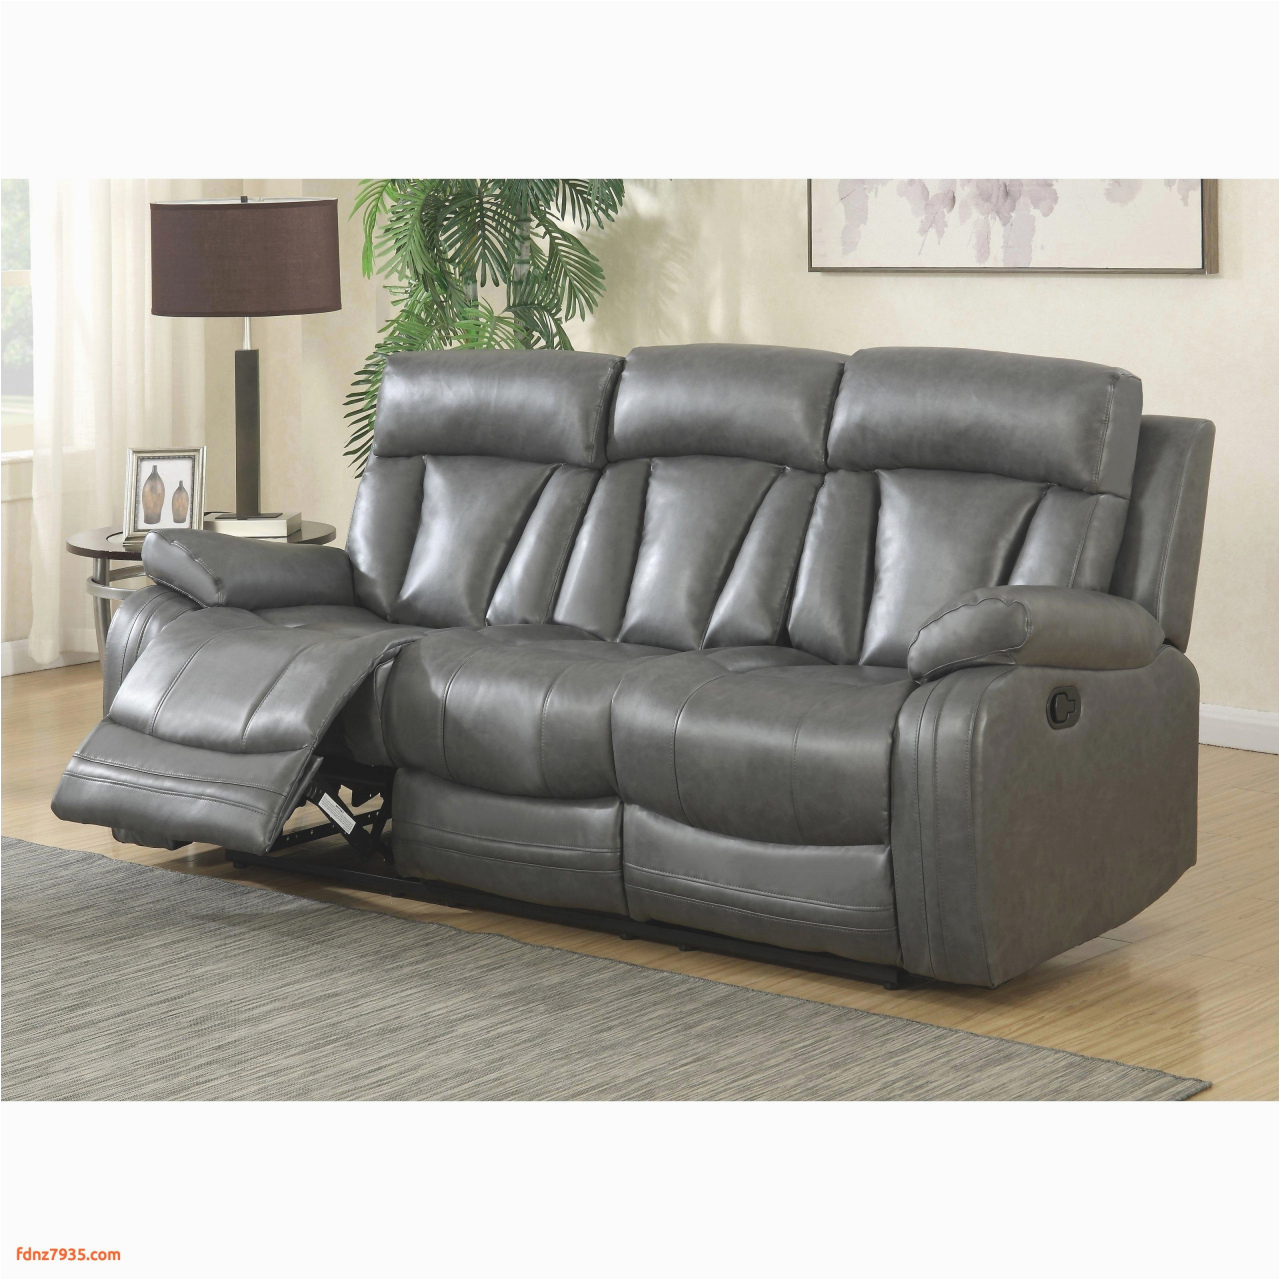 sofa bed couch couch in l form frisch l shaped sofa superb ikea l shaped sofa durch sofa bed couch